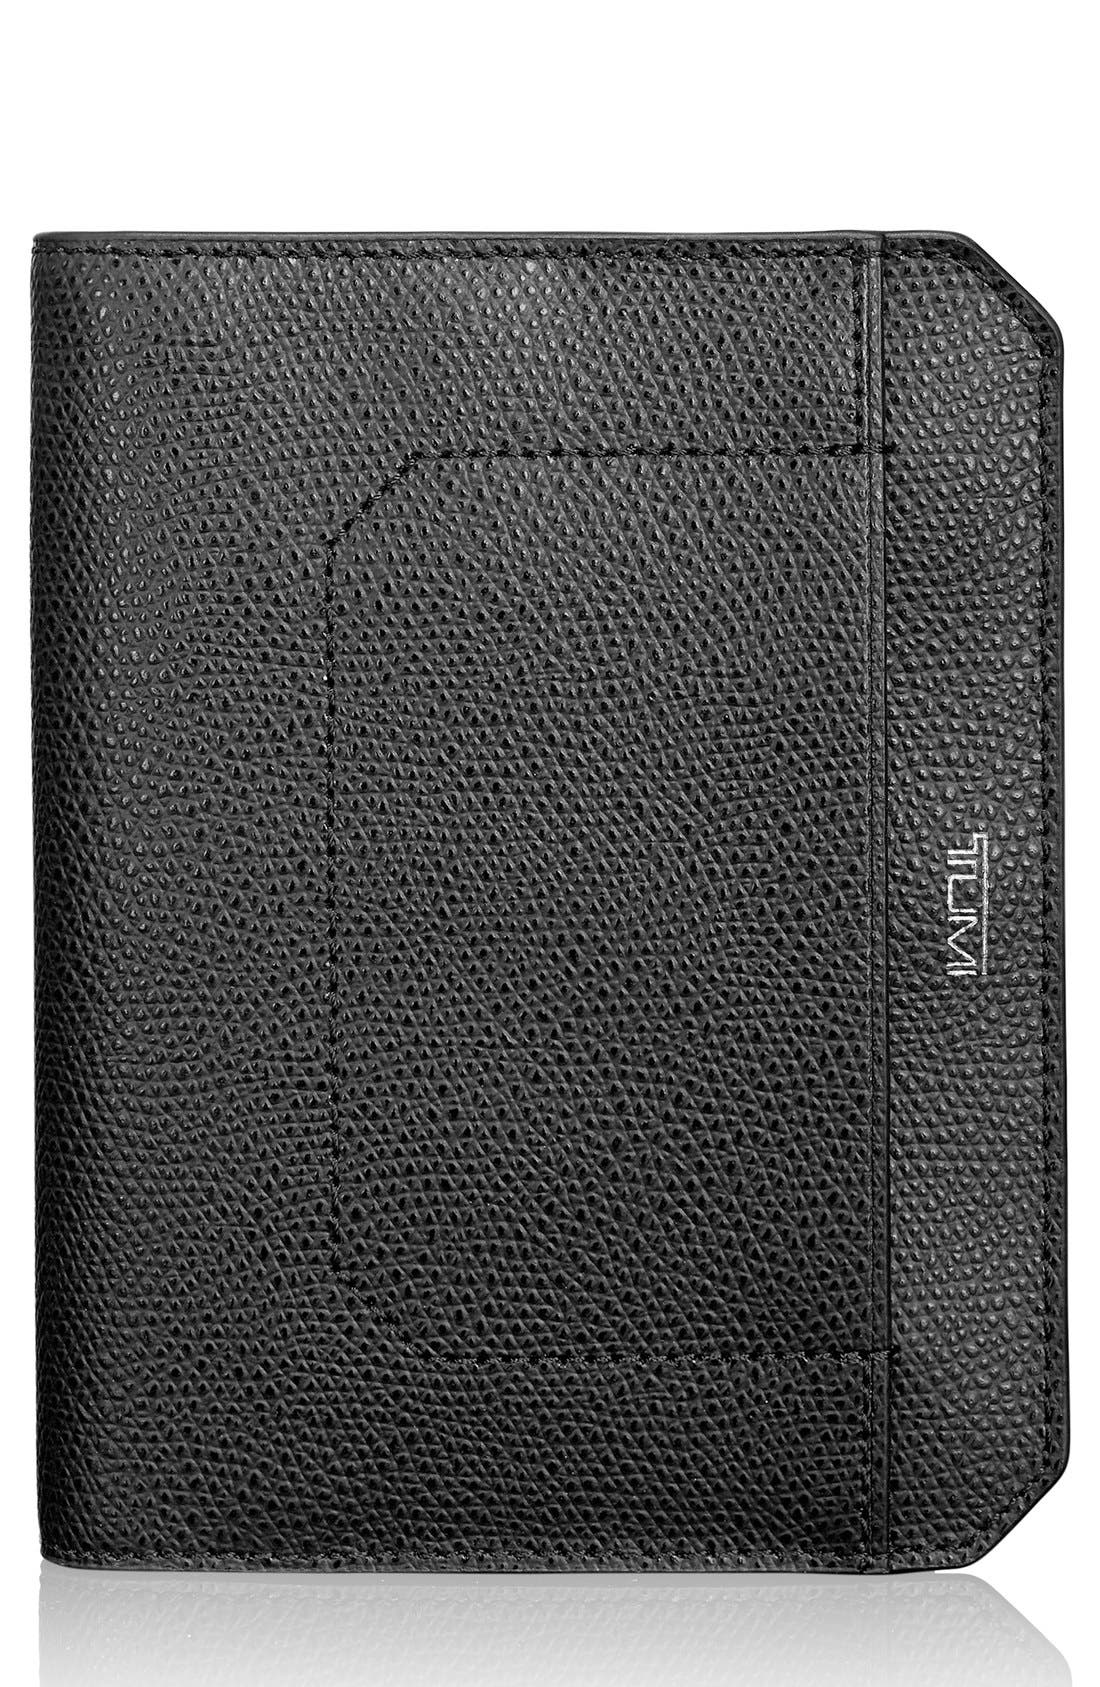 Main Image - Tumi Leather Passport Cover